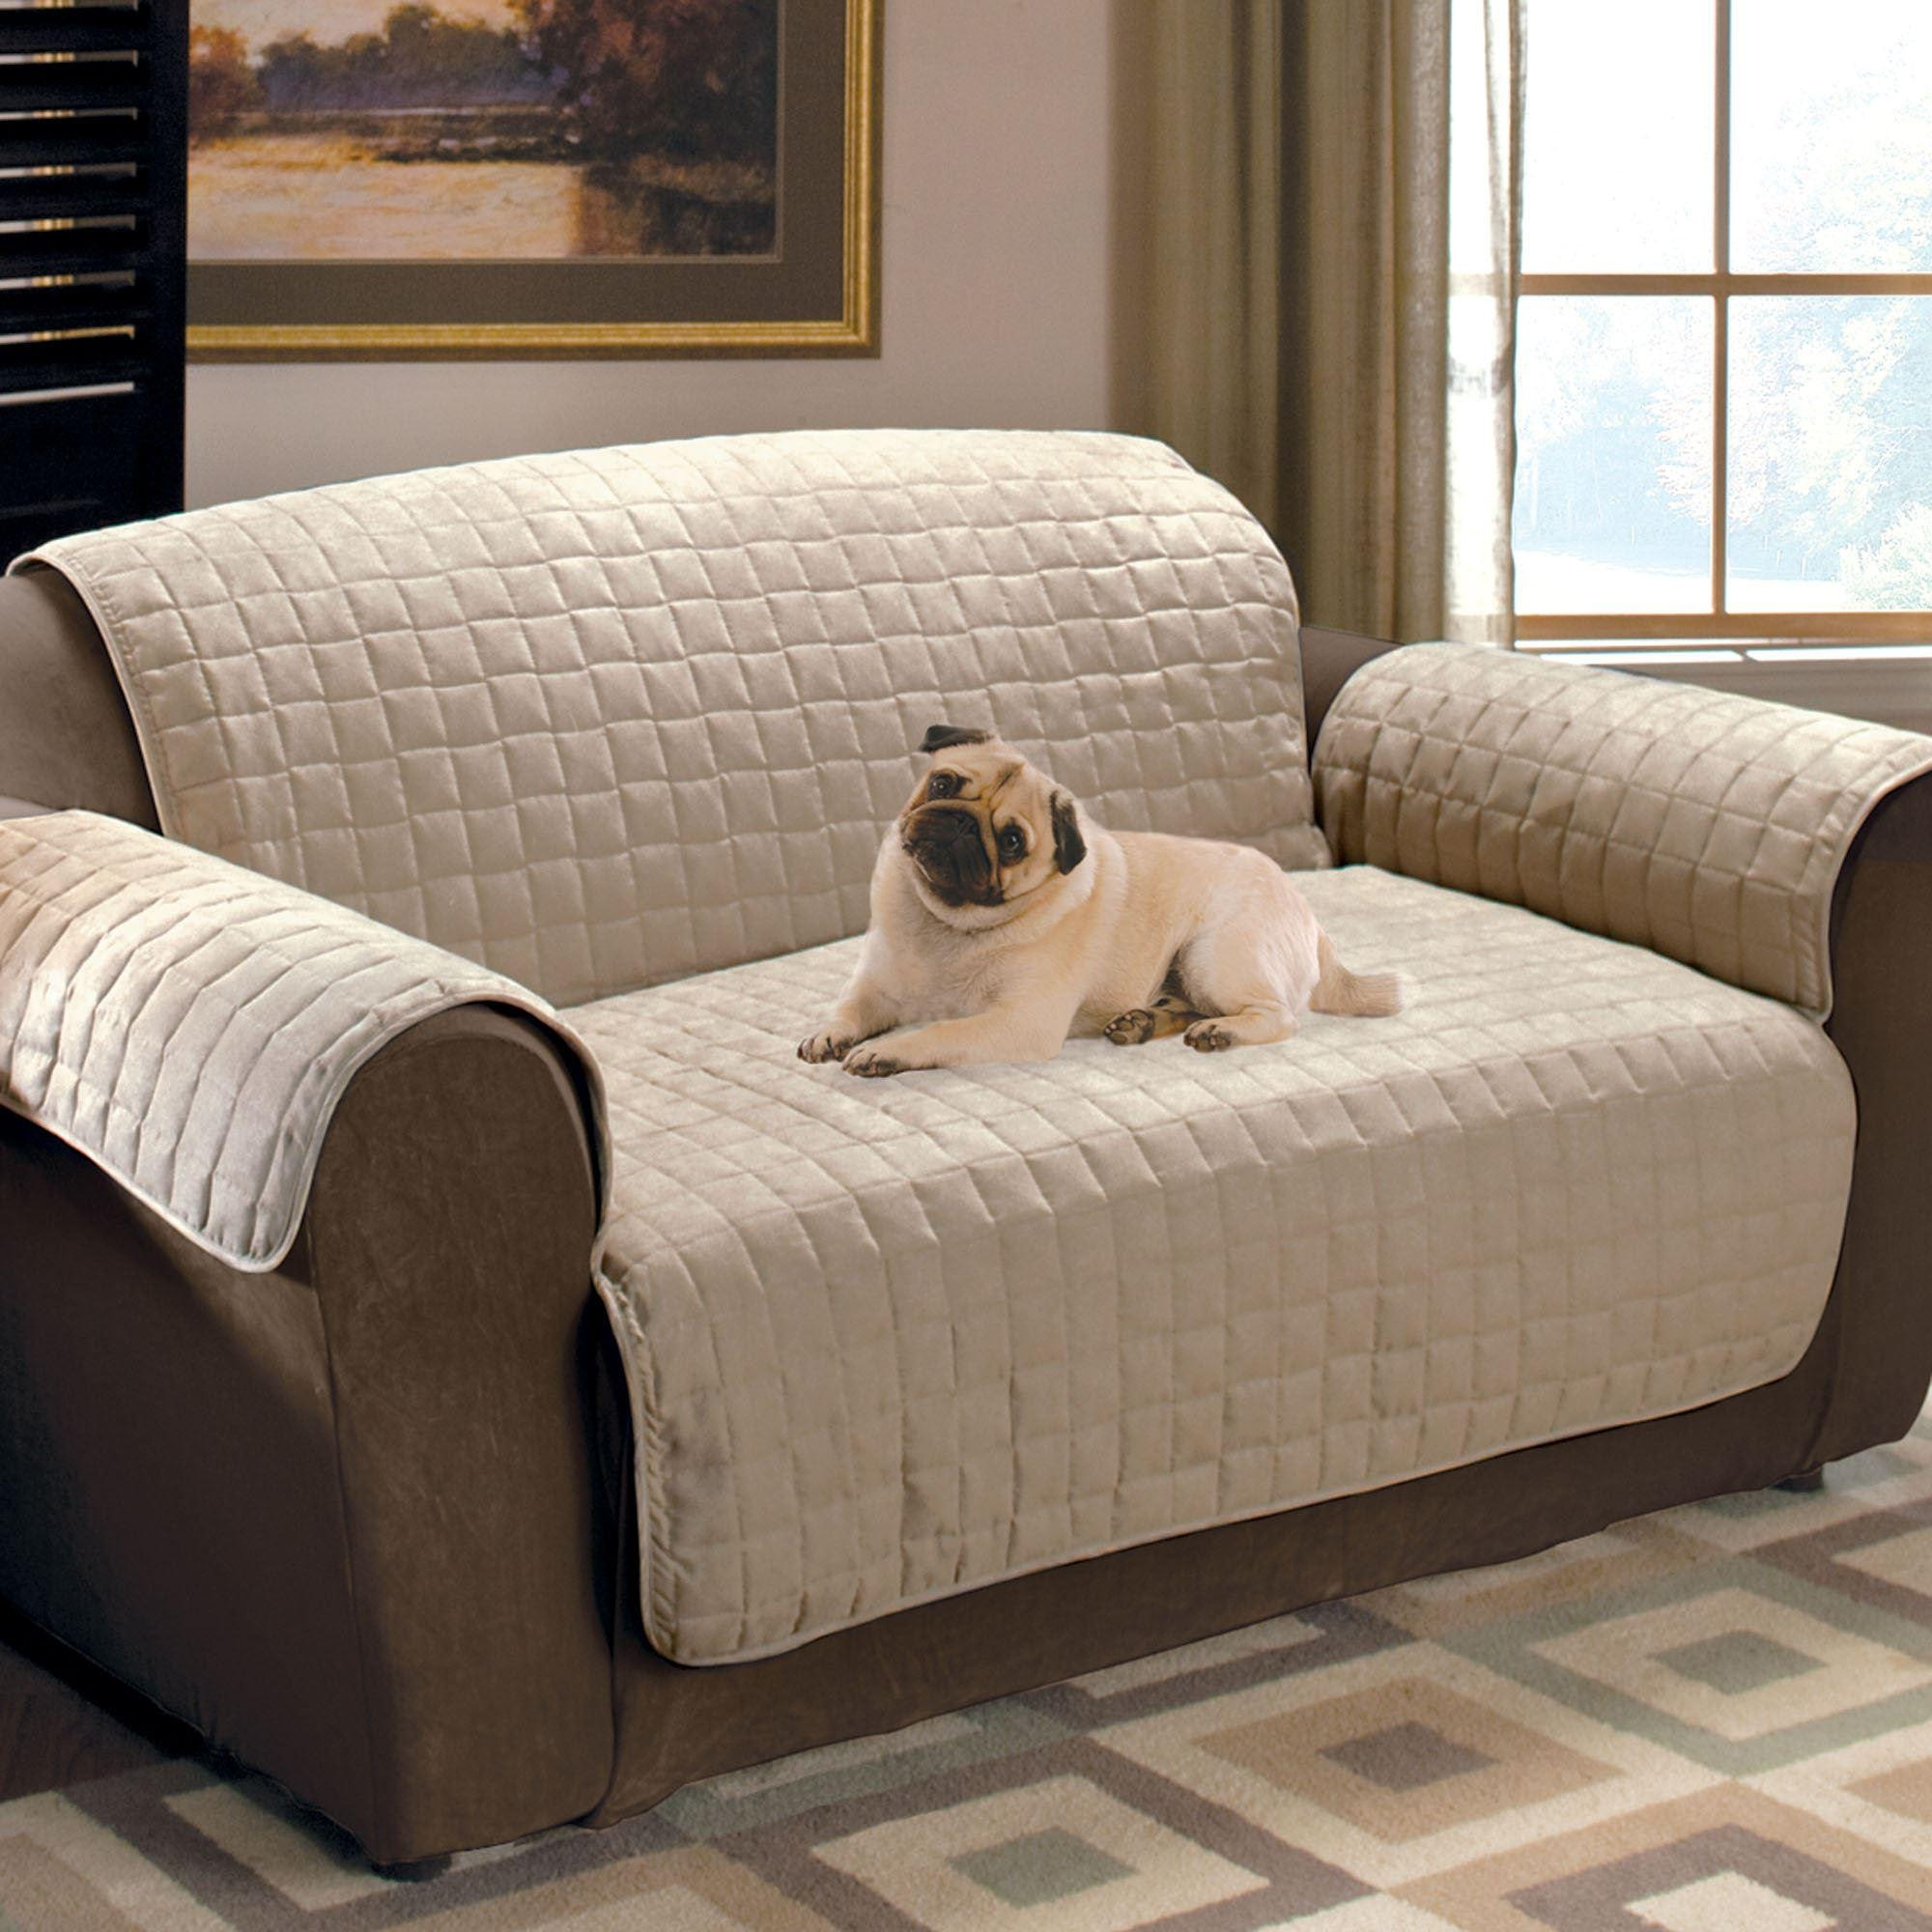 Faux Suede Pet Furniture Covers For Sofas, Loveseats, And Chairs In Sofa Settee Covers (View 2 of 22)